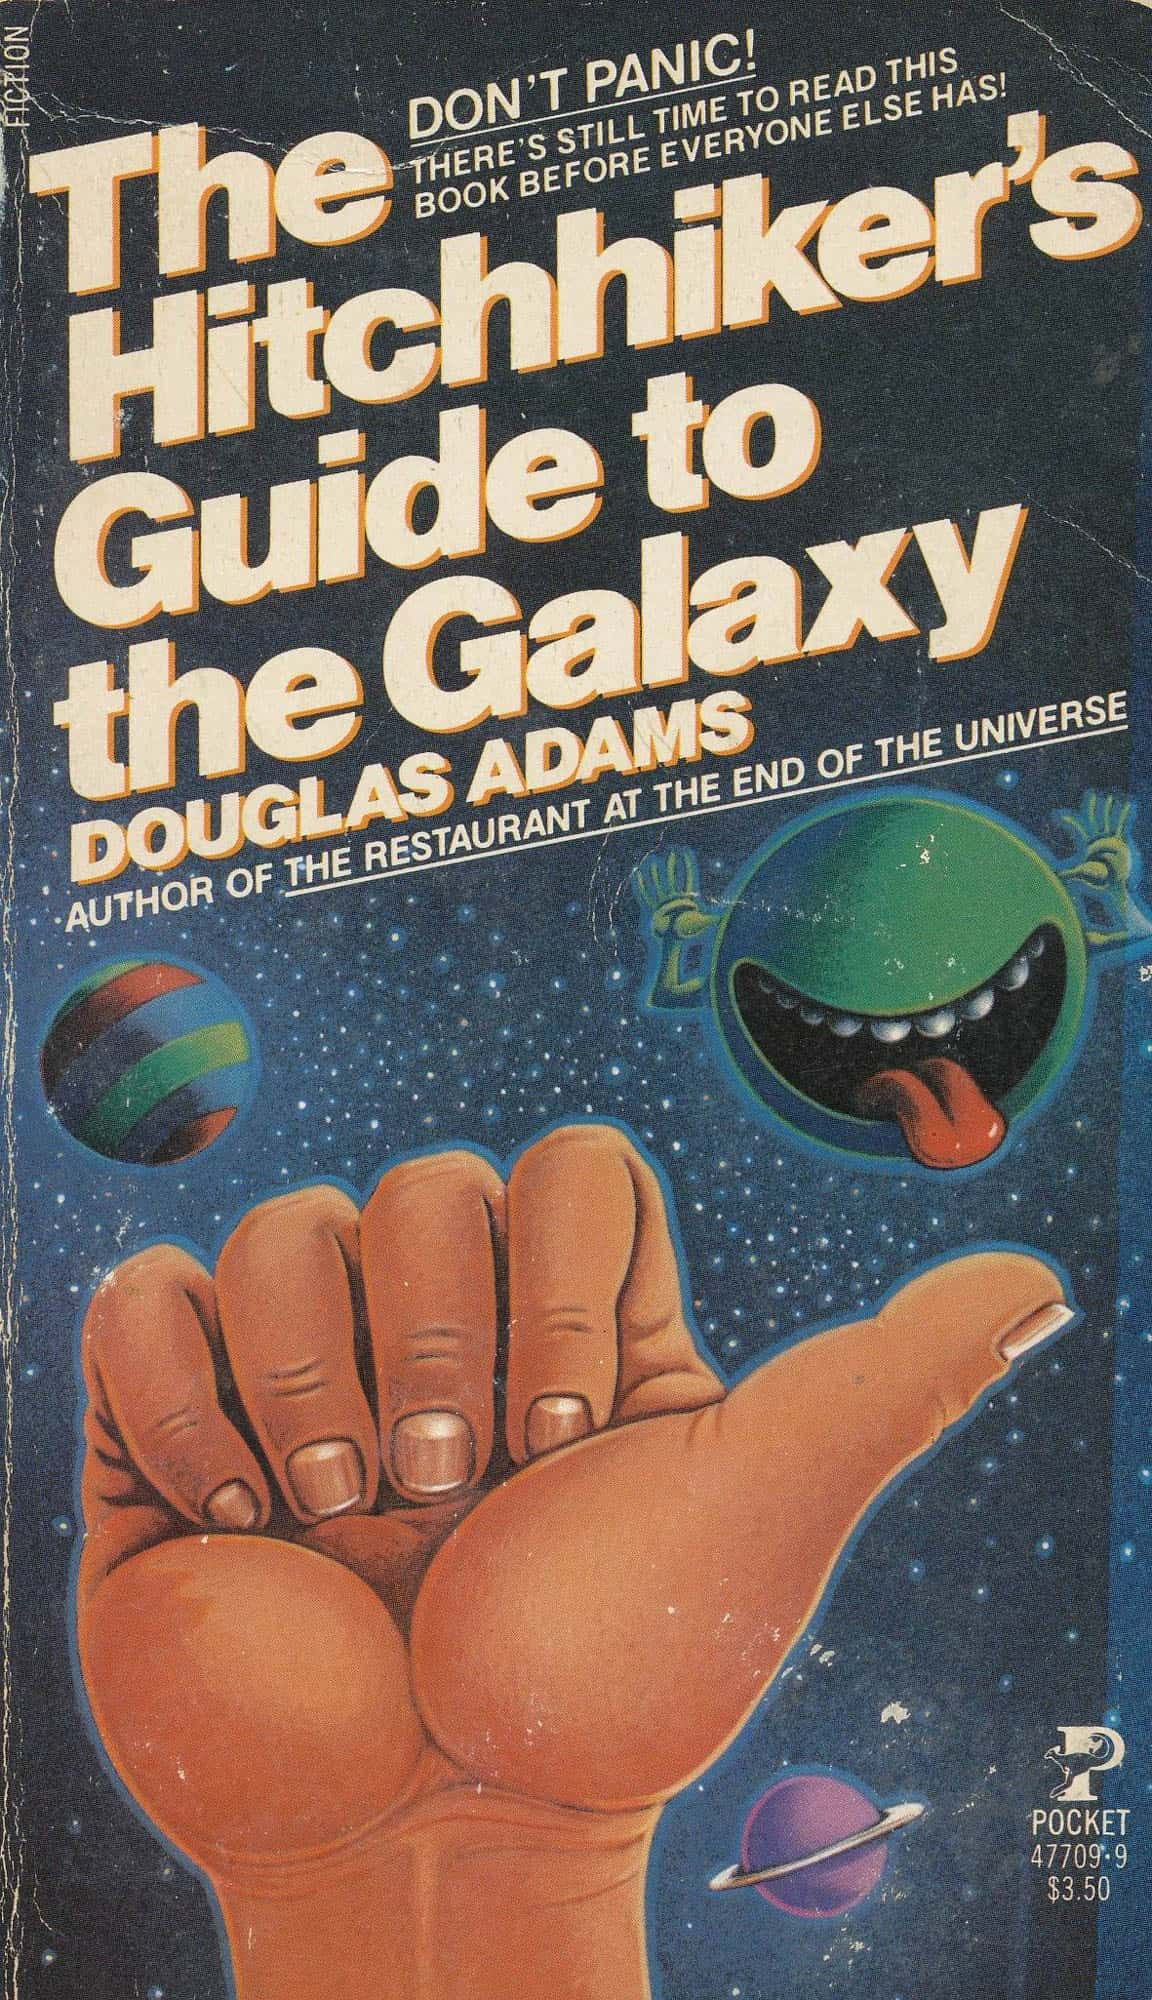 the hitchhikers guide to the galaxy Douglas adams' sci-fi comedy following the misadventures of hapless human arthur dent.